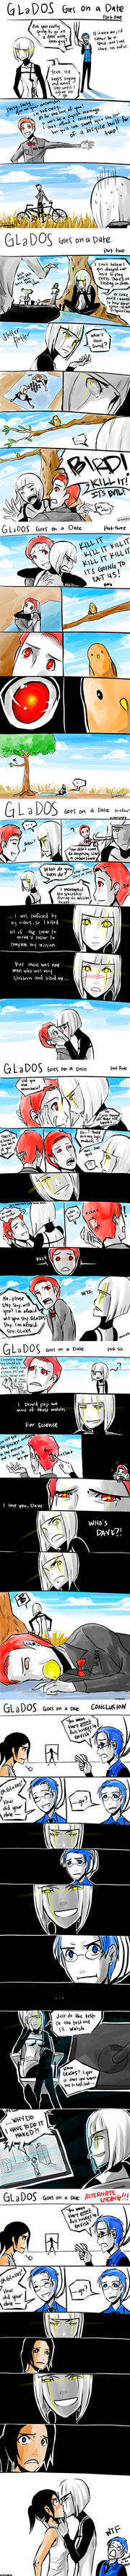 GLaDOS goes on a date by did-you-reboot